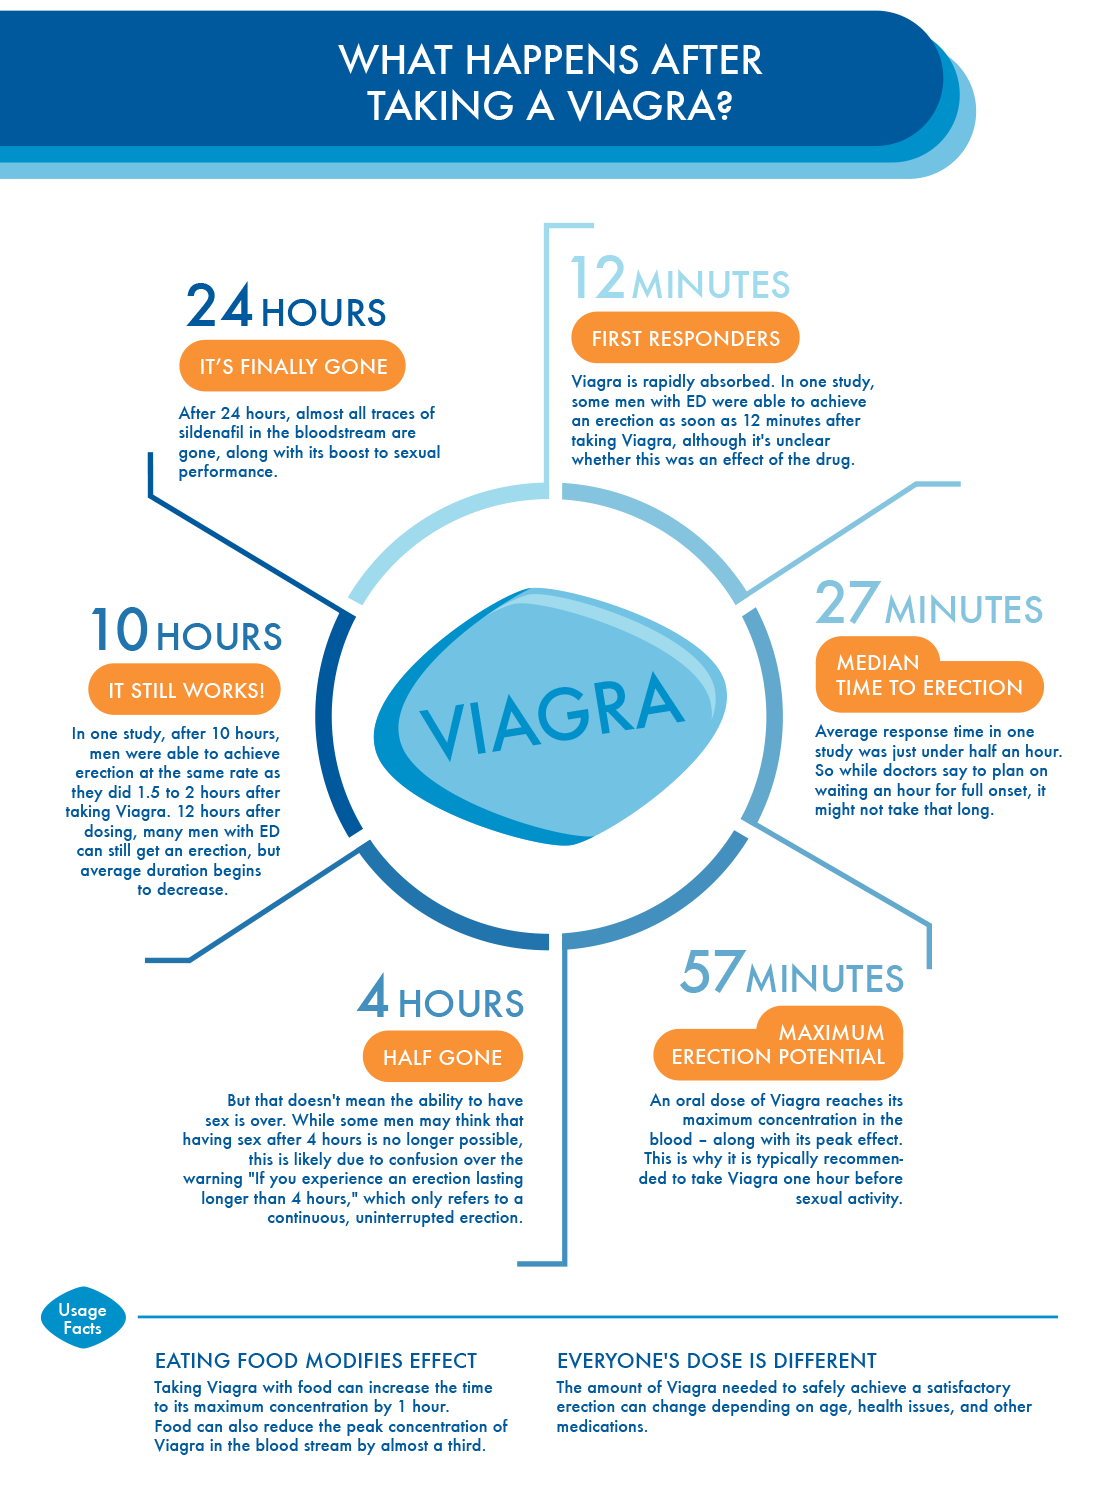 How long does it take viagra to take effect